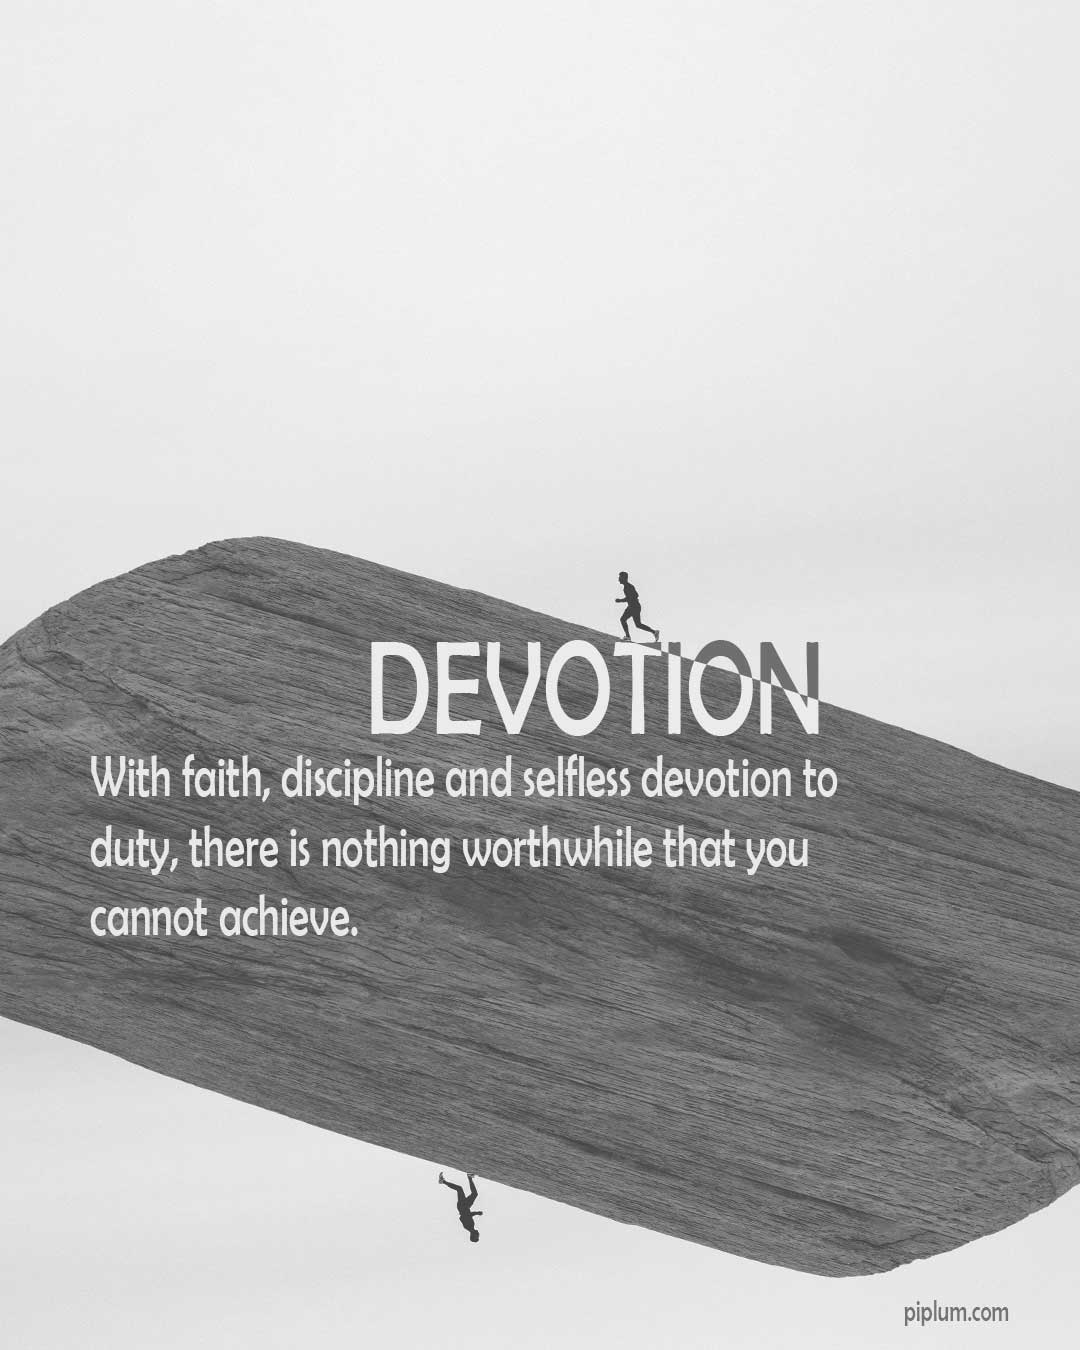 Devotion Quote. With faith, discipline and selfless devotion to duty, there is nothing worthwhile that you cannot achieve.